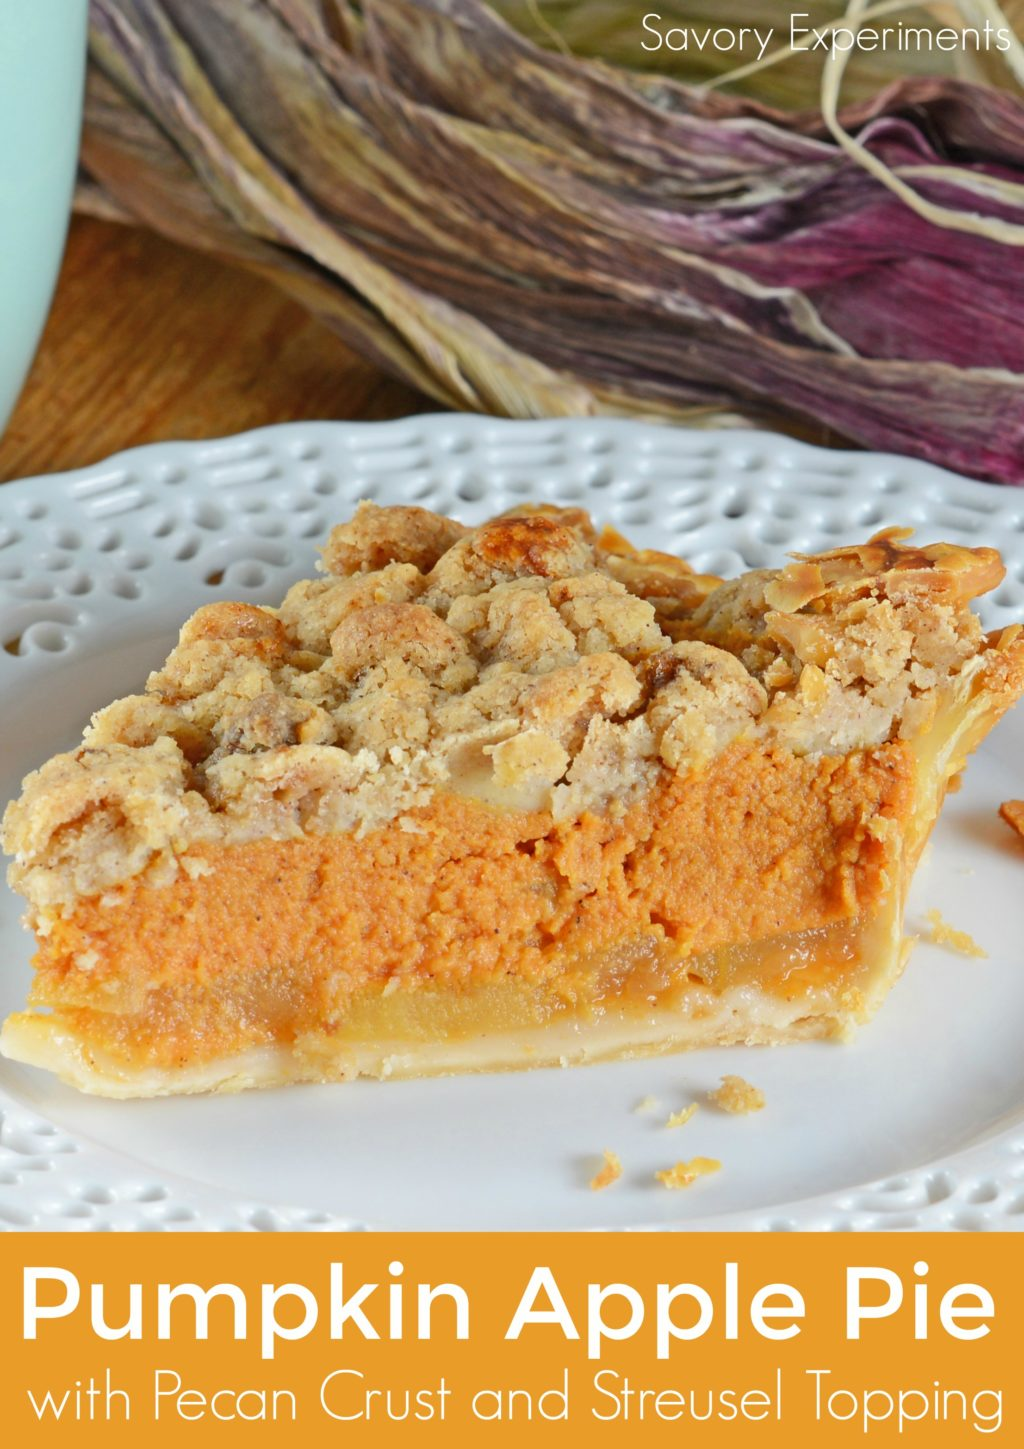 Best Thanksgiving Dessert Recipes - Pumpkin Apple Pie